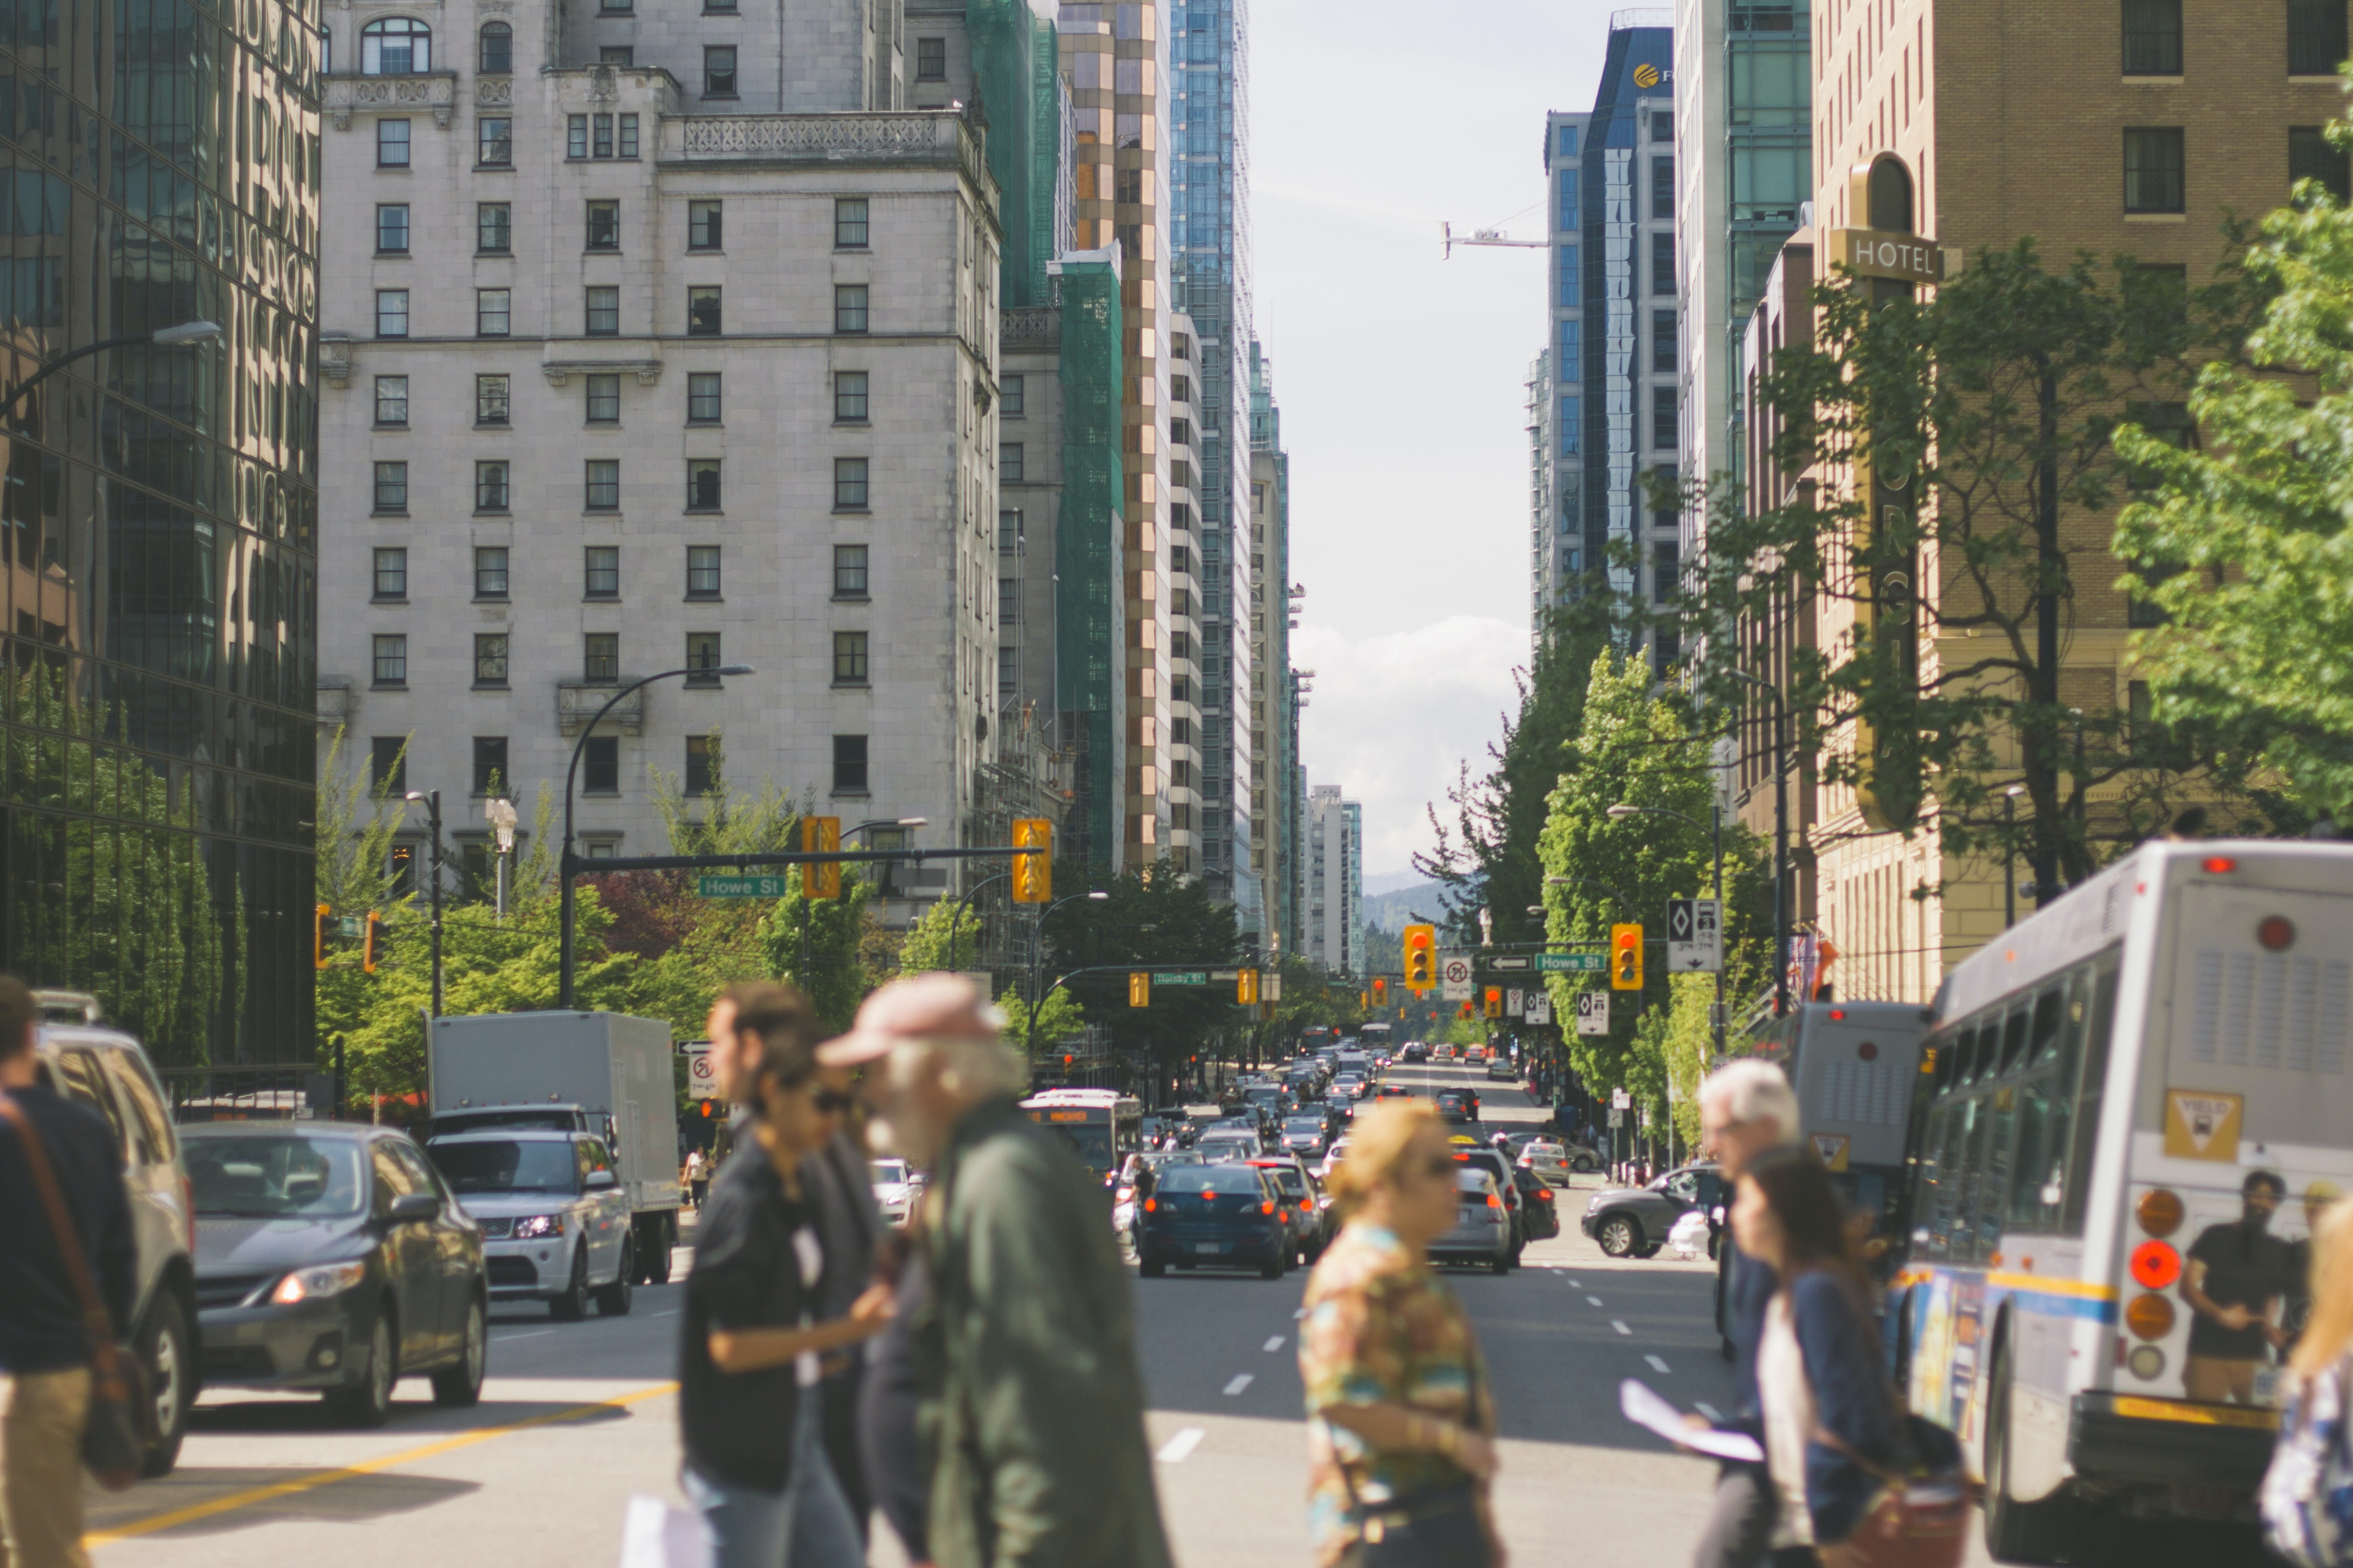 People on a crosswalk in a city on a bright day